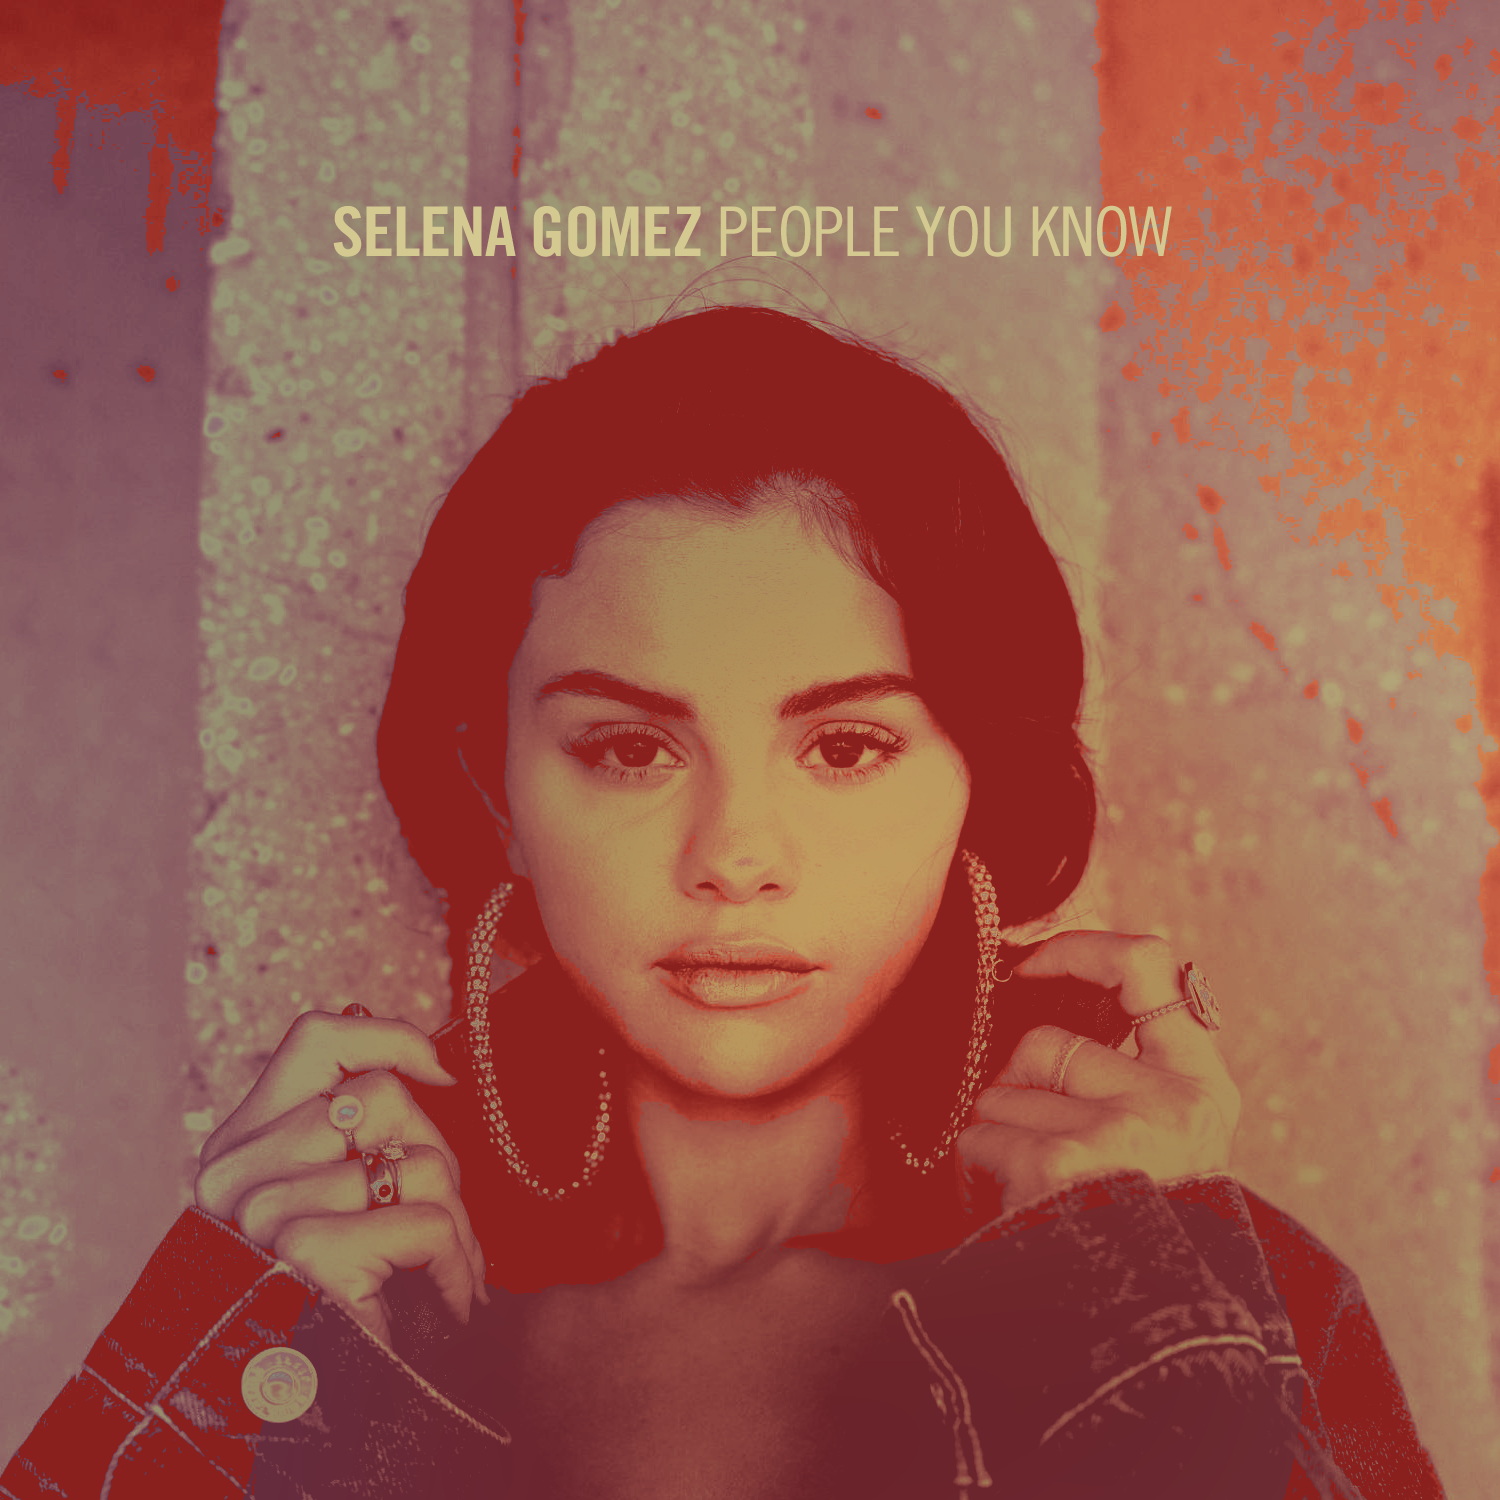 Selena Gomez - People You Know (Fanmade Cover)